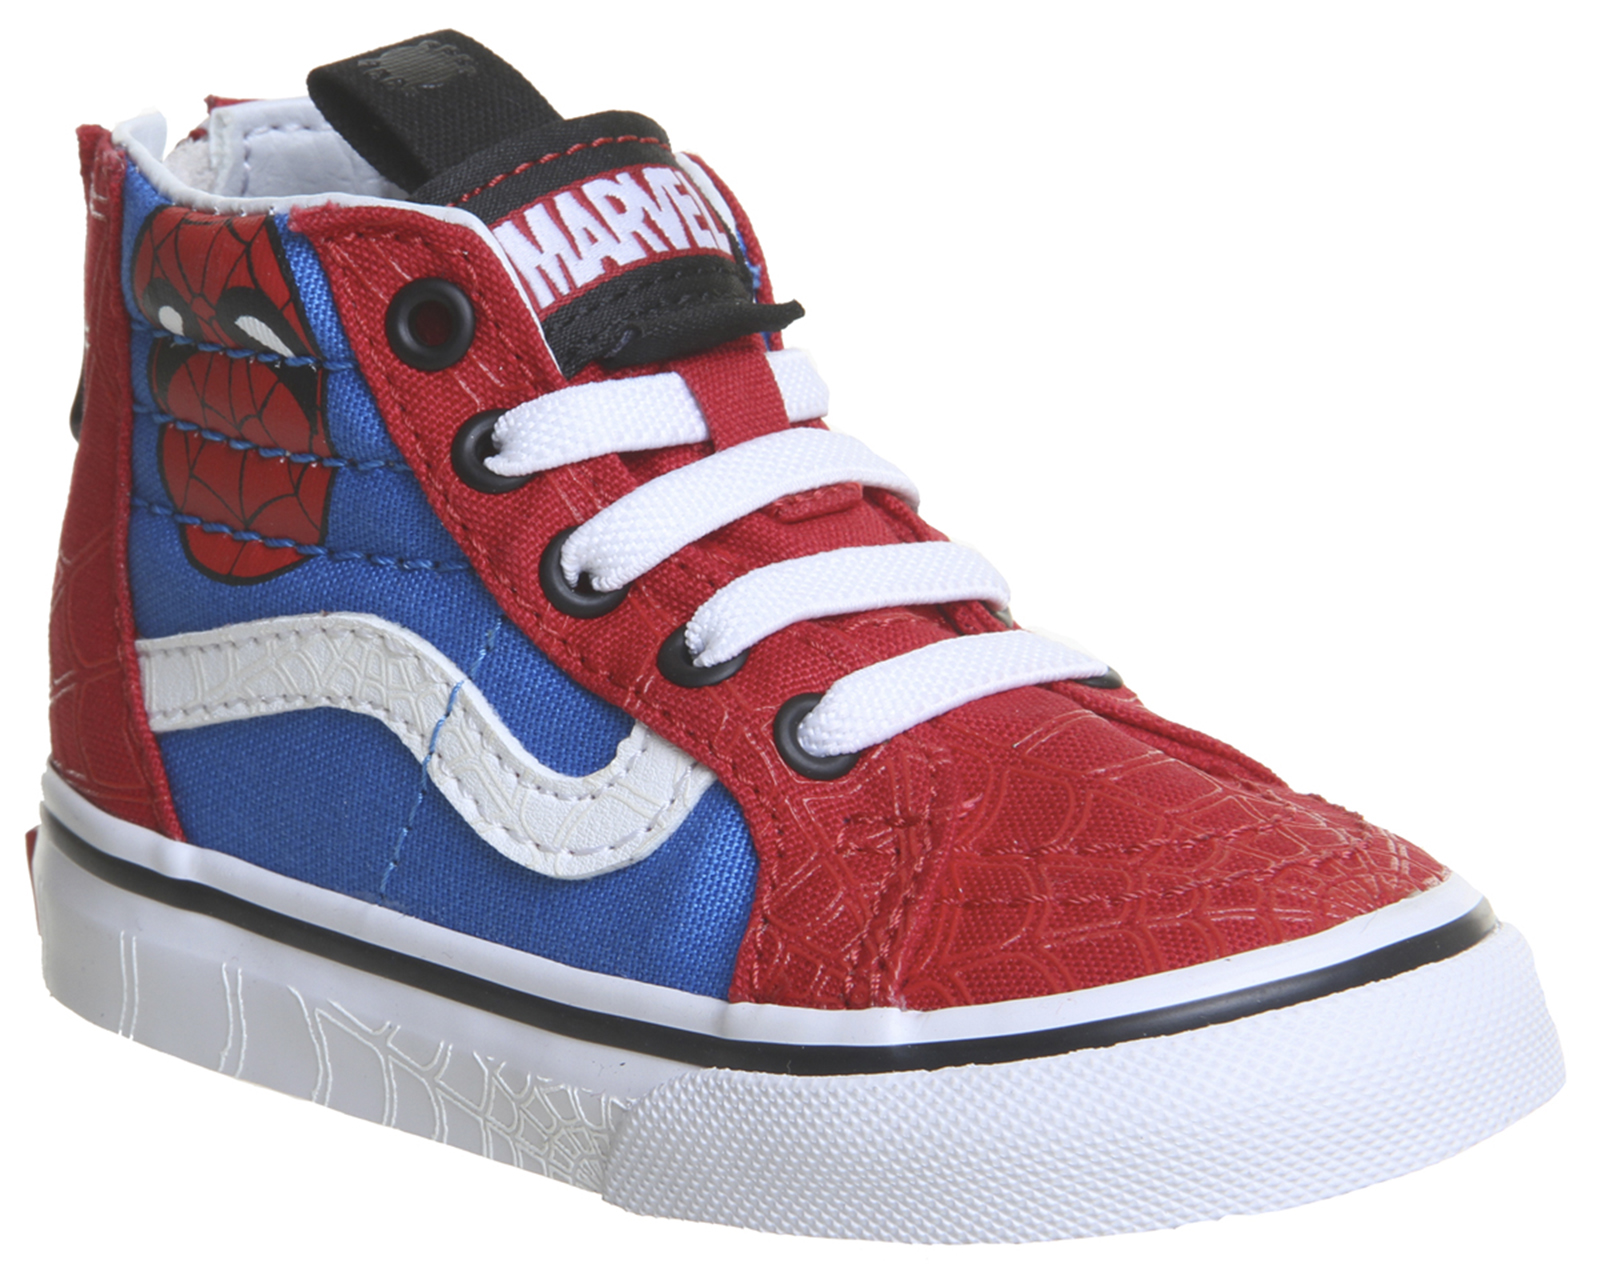 63e5e6a79fc Détails sur Kids VANS Sk8 Hi Zip Toddlers Spiderman Vrai Blanc MARVEL KIDS-  afficher le titre d origine